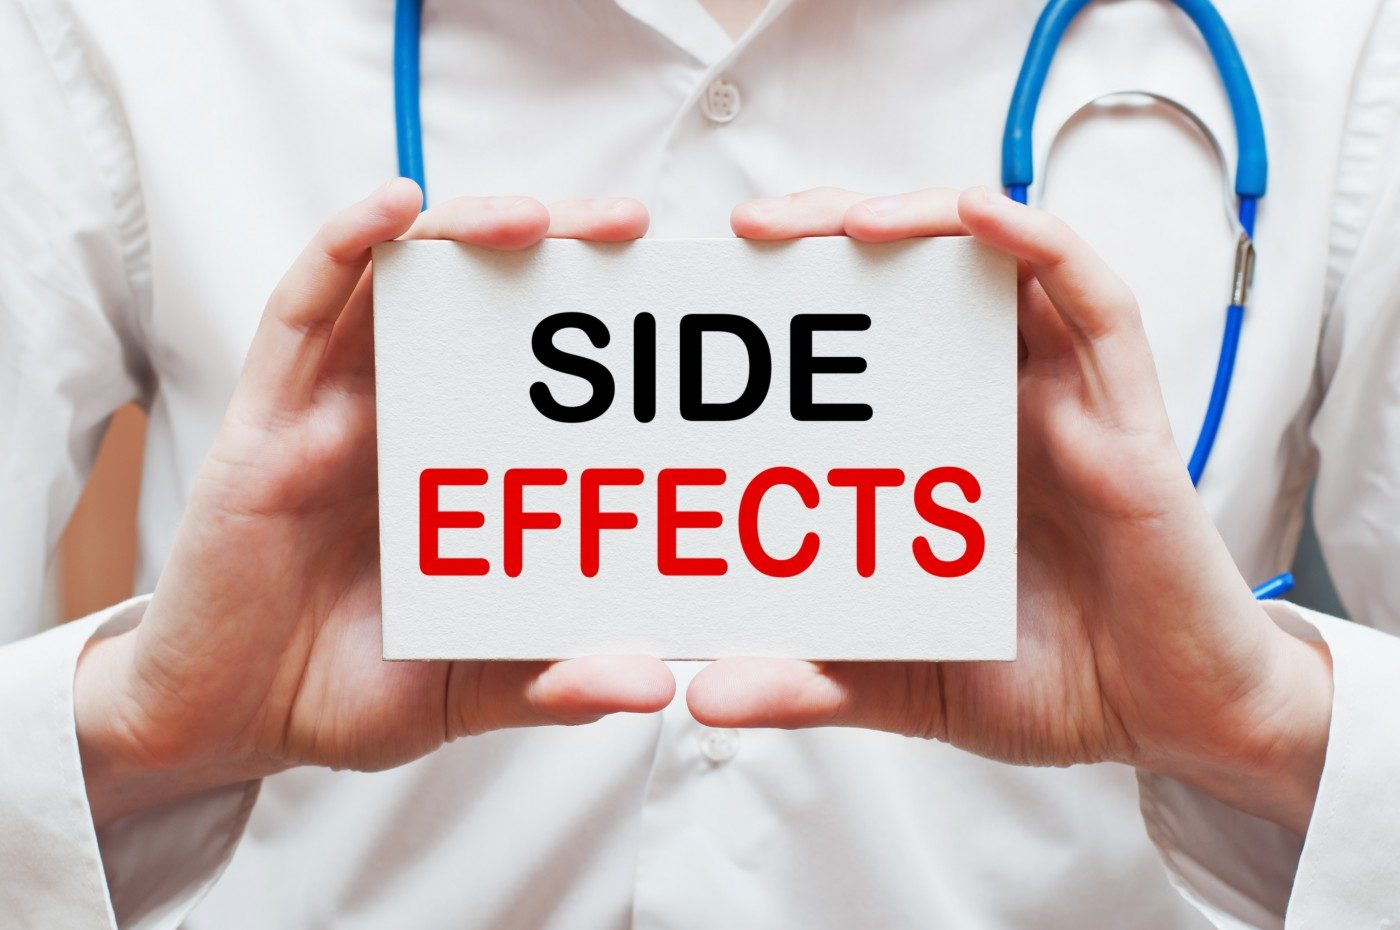 Prostate Cancer Radiation Therapy Side effects